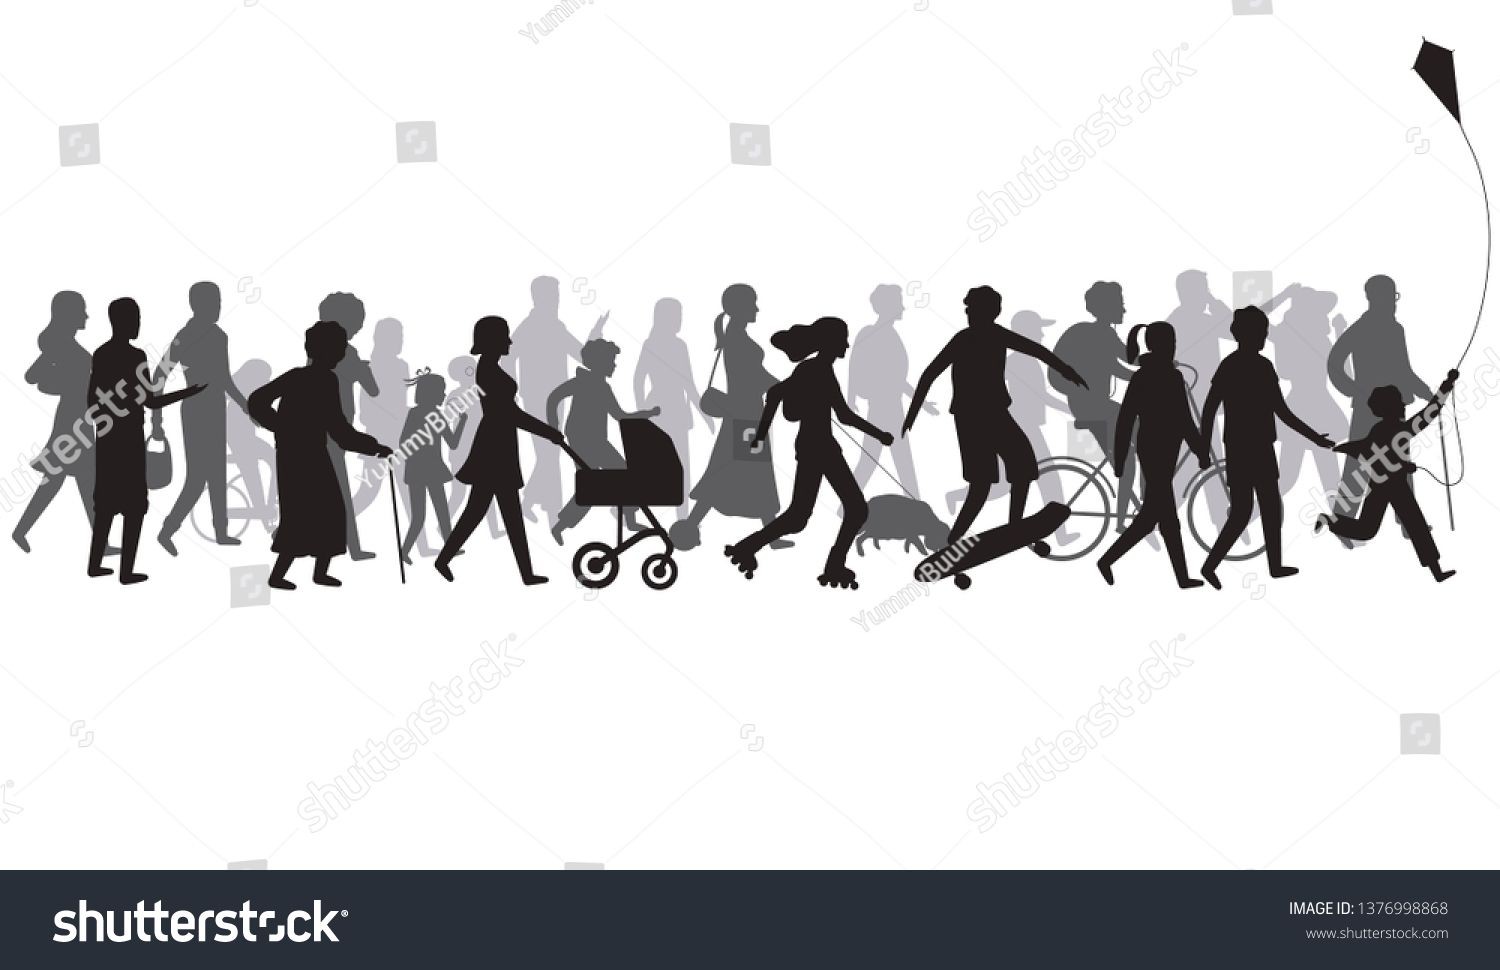 People Crowd Silhouette Group Of Person With Shadows Walk Family